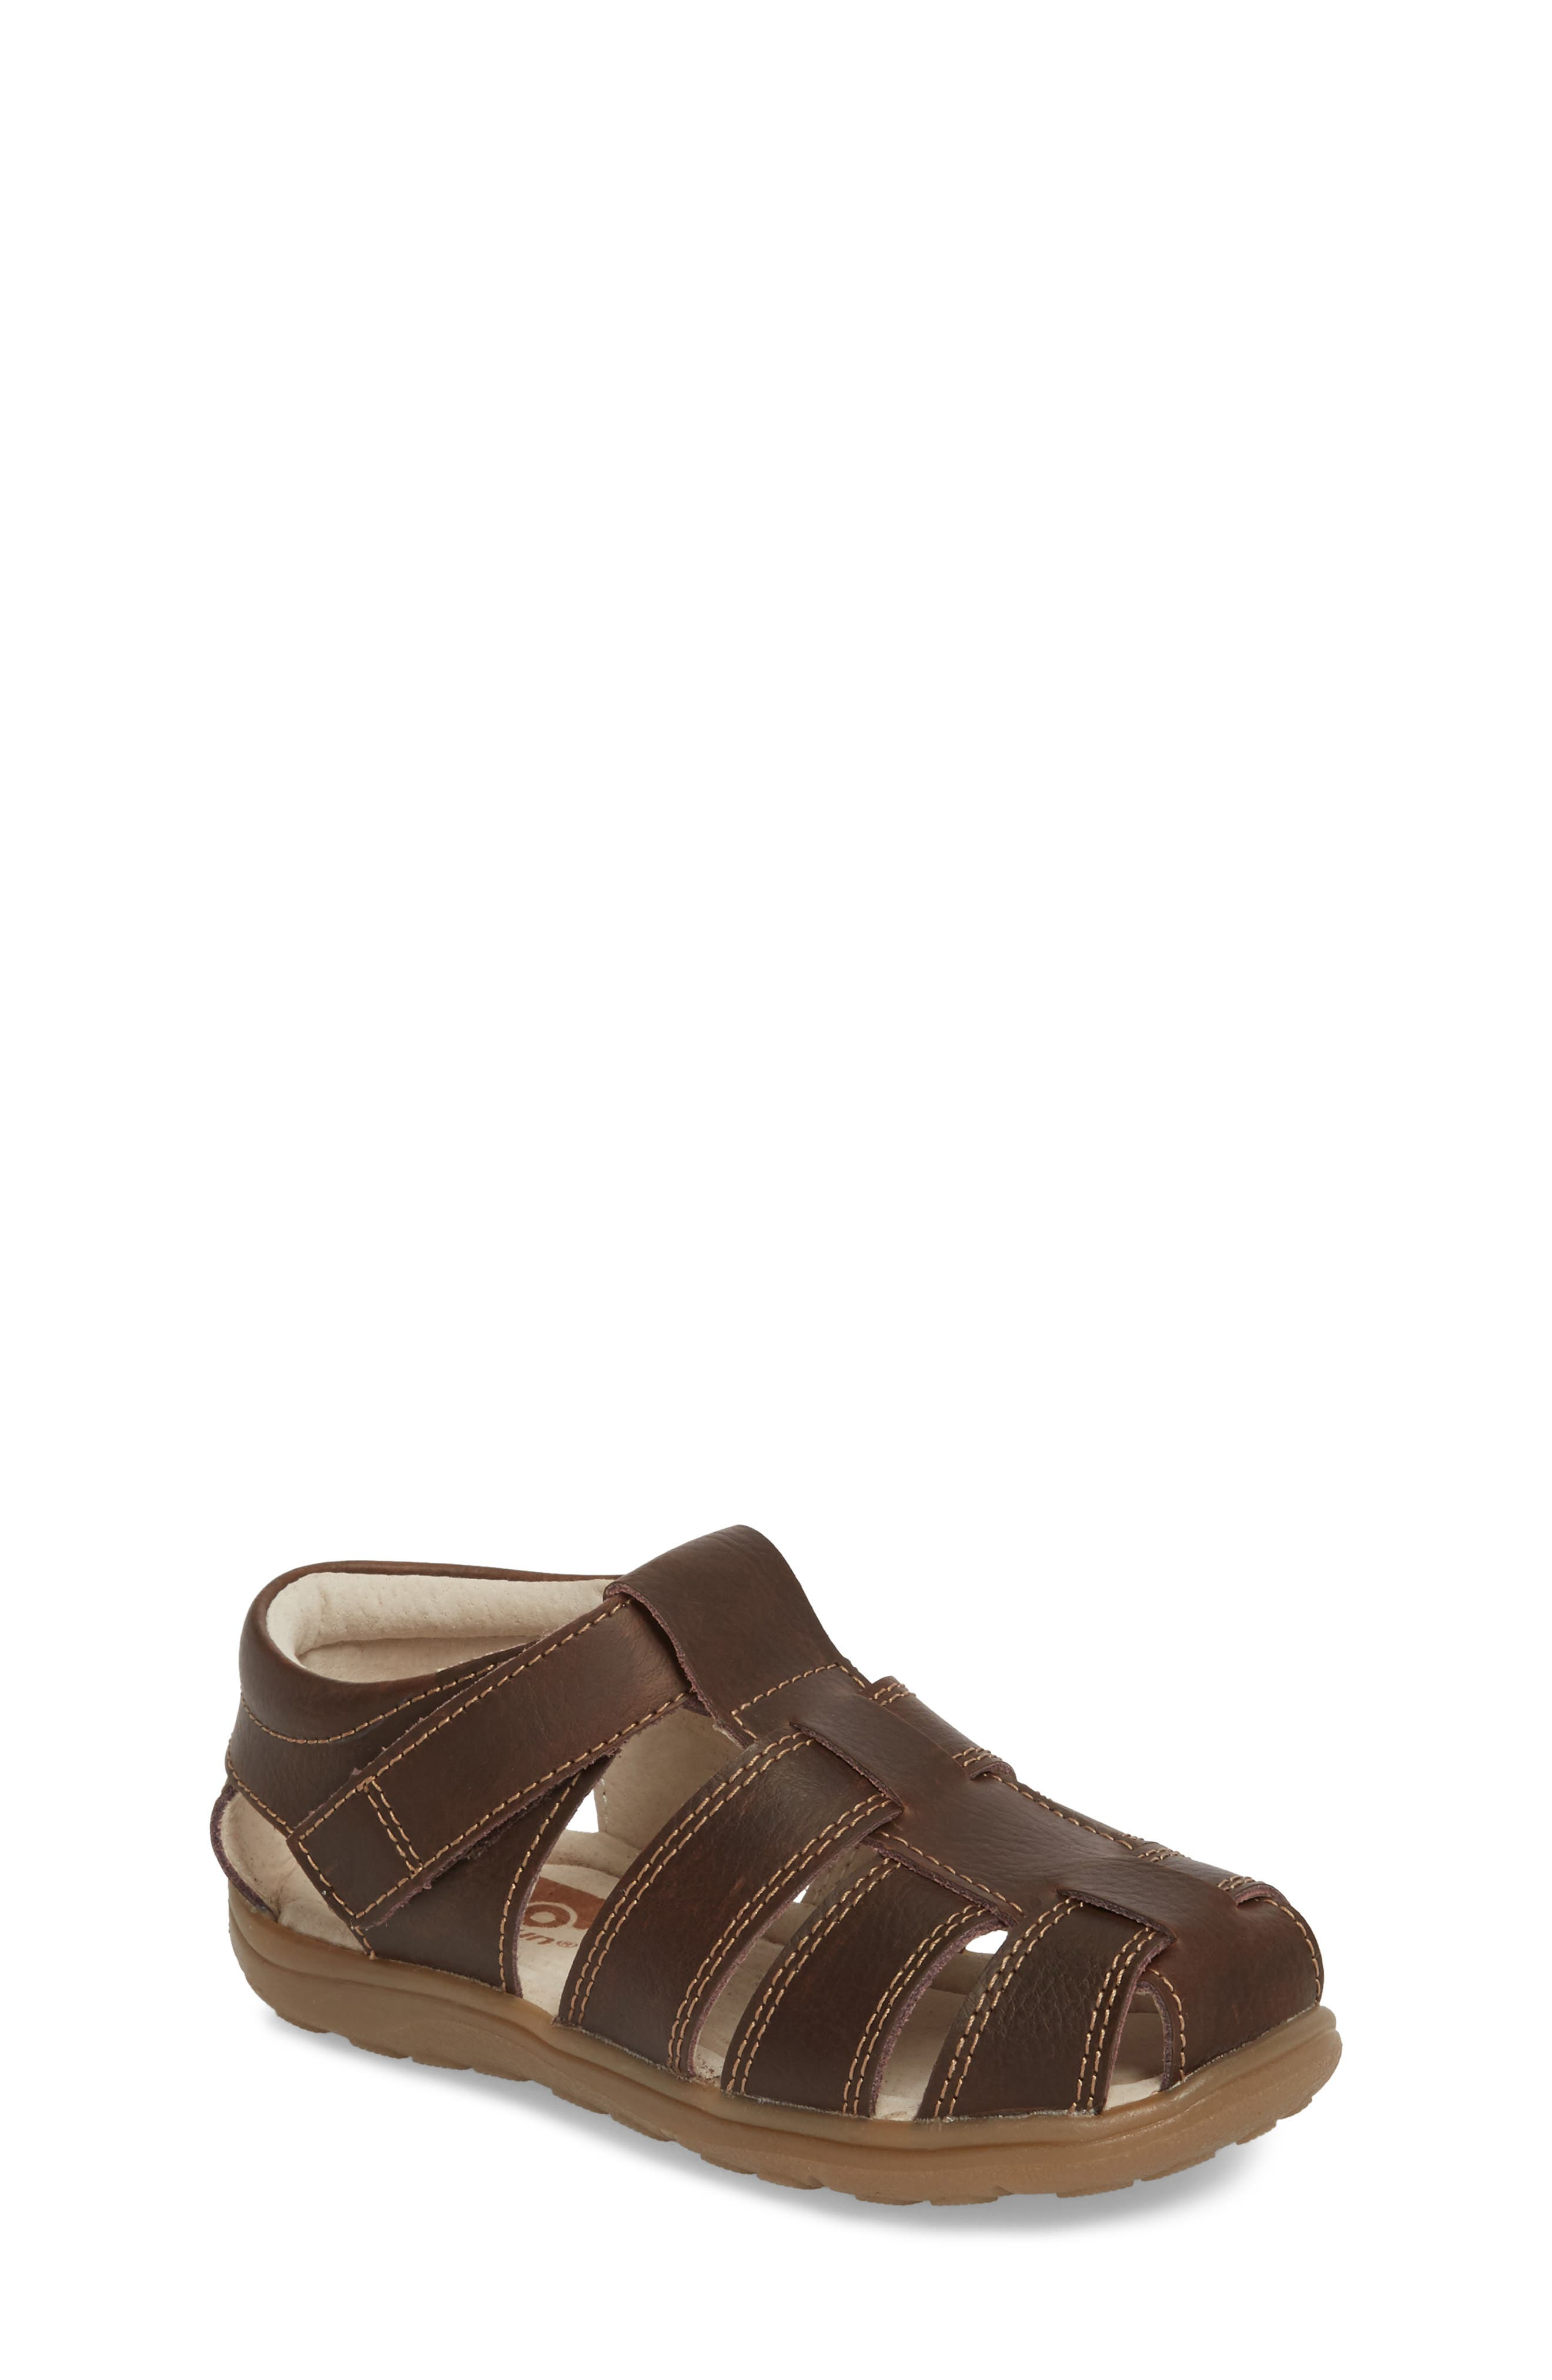 Main Image - See Kai Run Jude III Fisherman Sandal (Toddler & Little Kid)